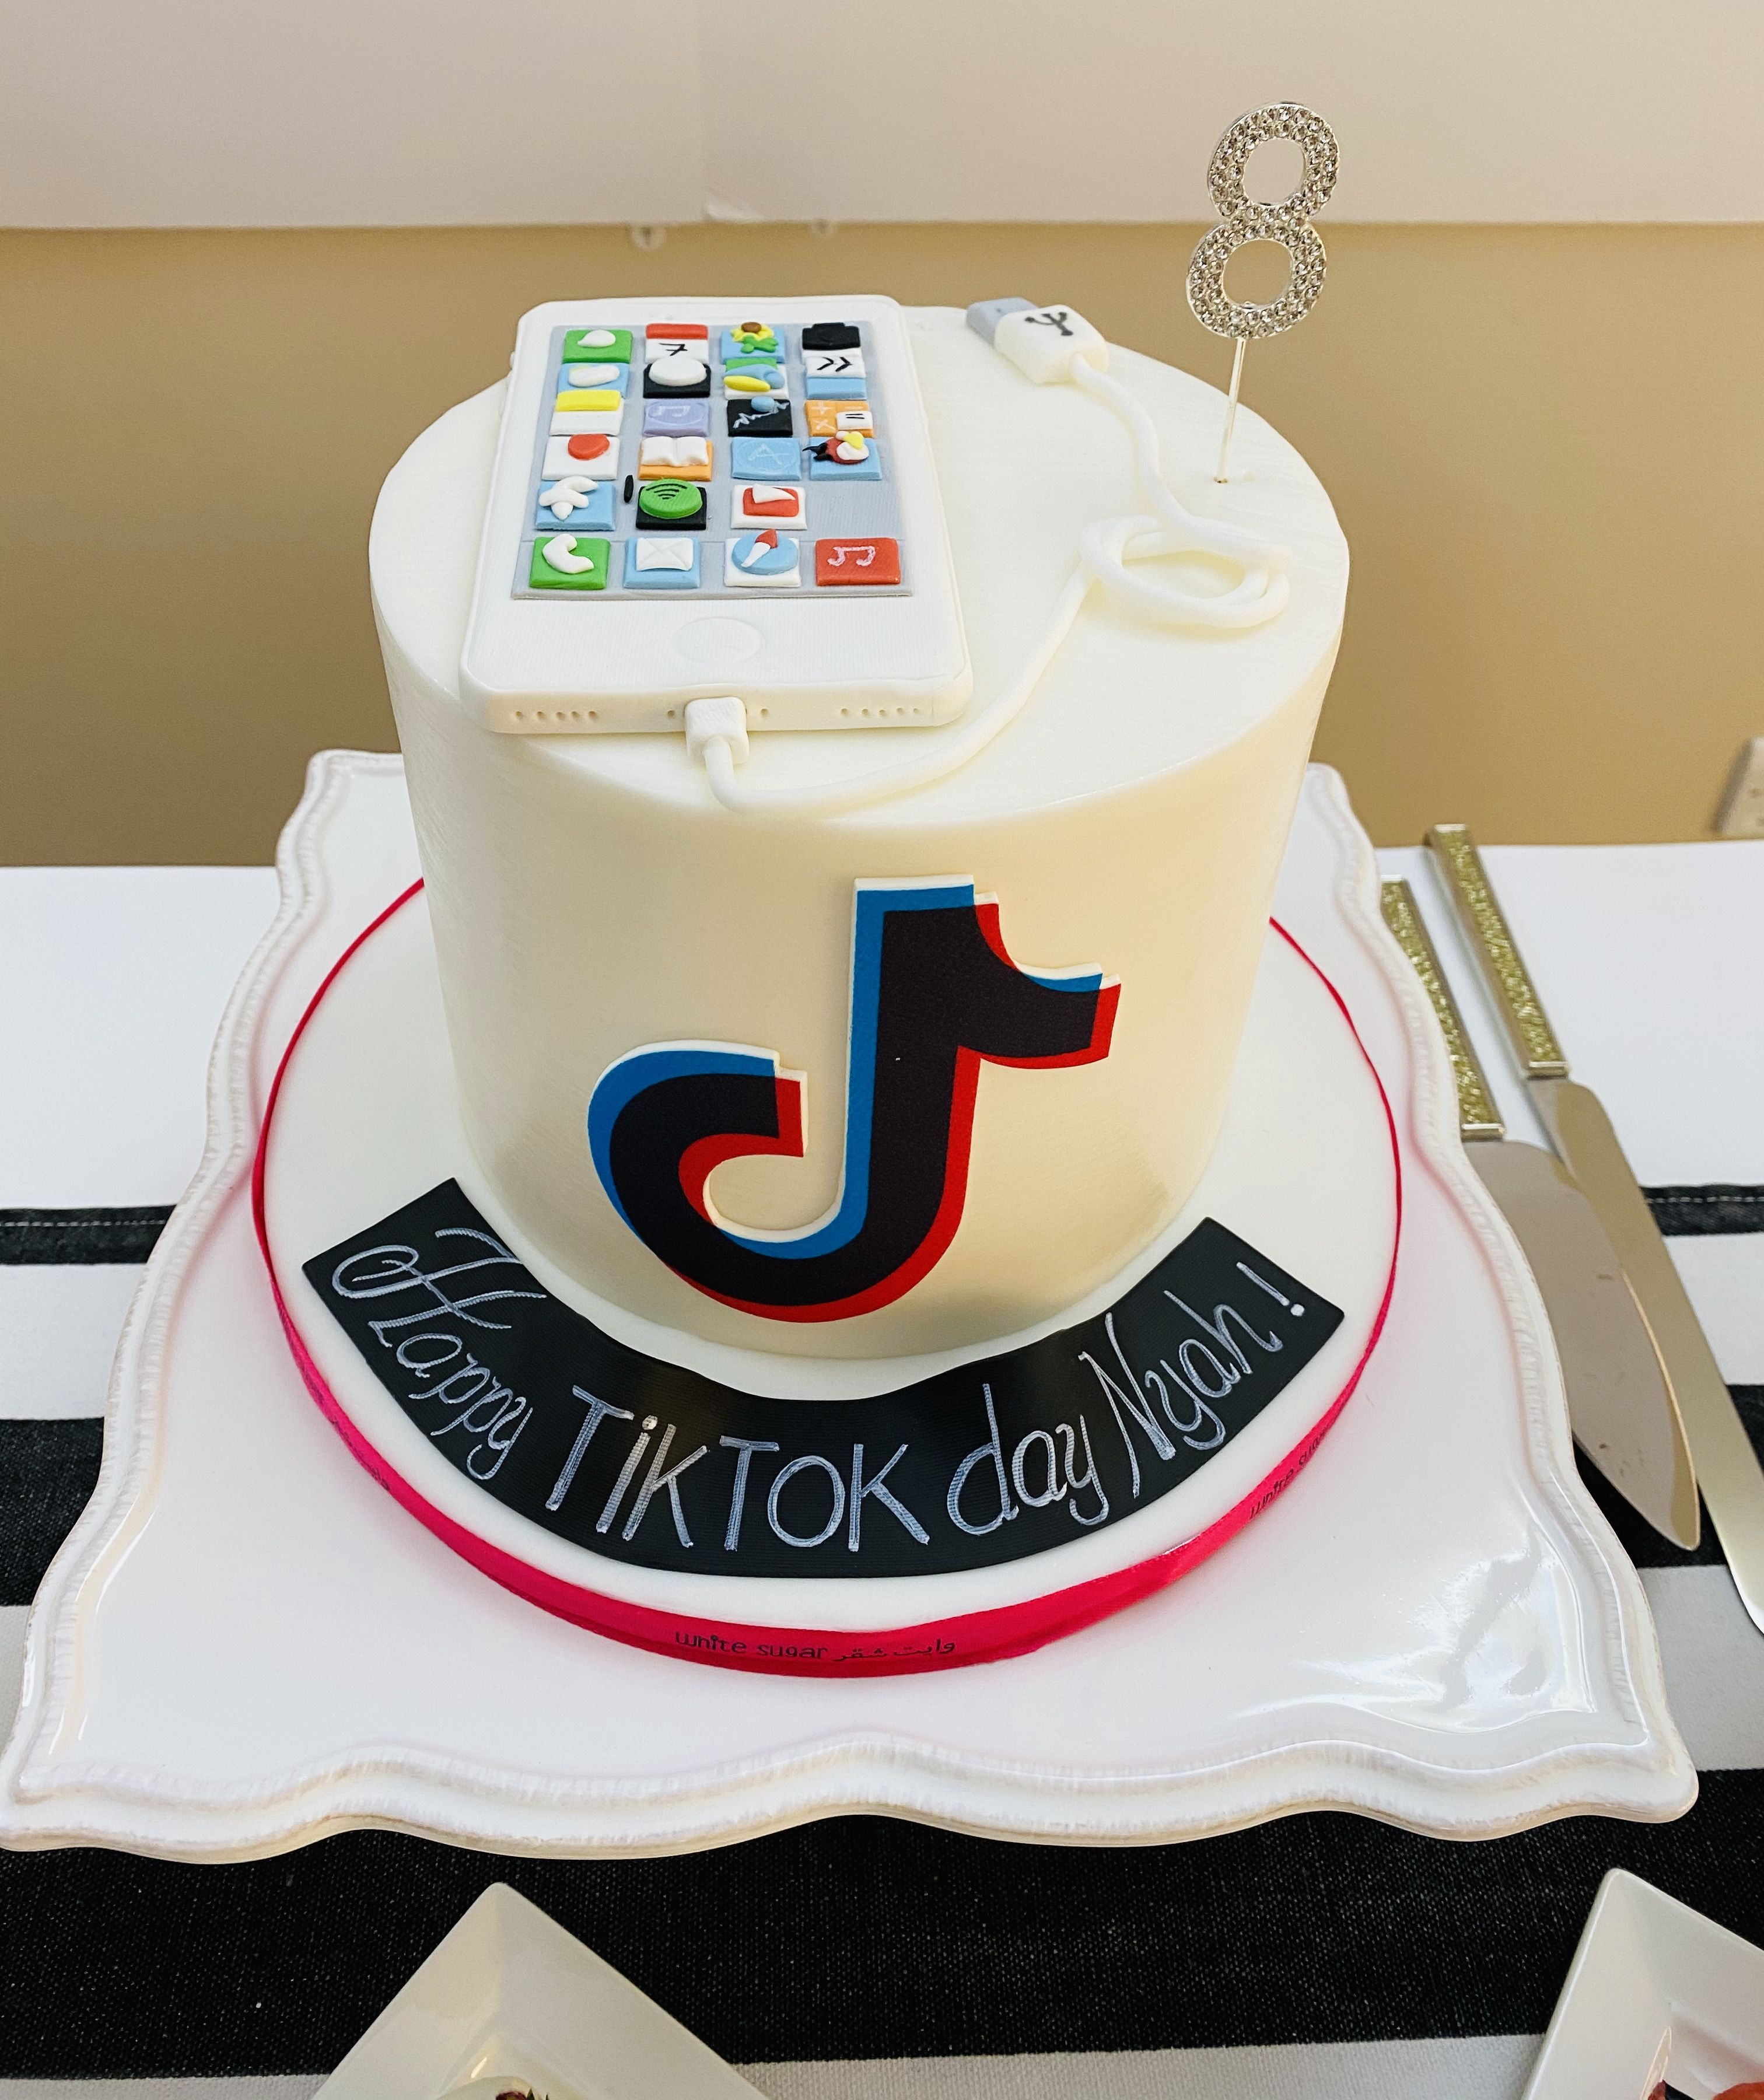 Tiktok Birthday Cake For An Eight Year Old Obsessed With The Iphone 12th Birthday Cake Happy Birthday Cake Pictures Cake